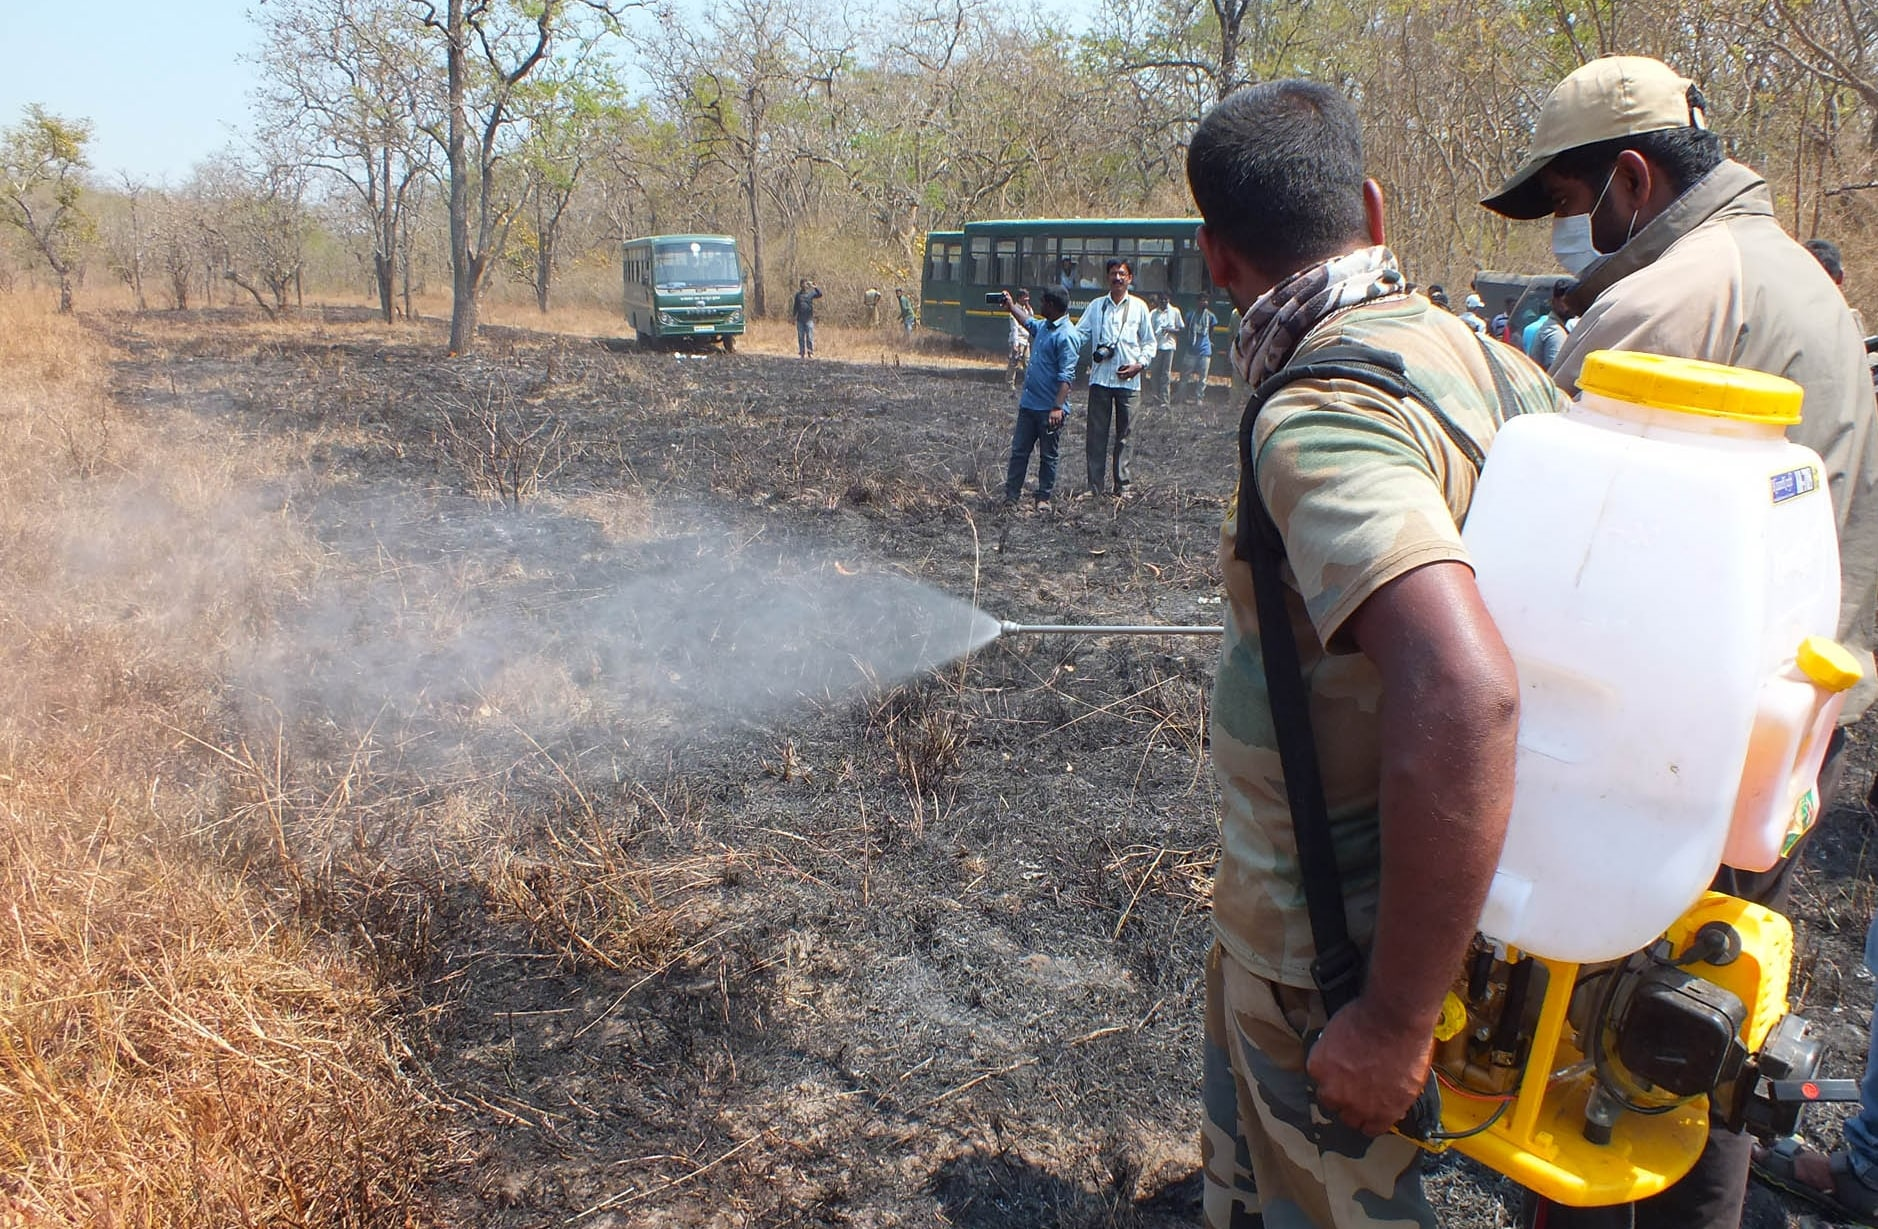 Eyewitnesses said hundreds of trees and bushes had been reduced to ashes. The forest department has started a probe to find what caused the fire, extent of damage and measures to breathe life into the huge tract of land bereft of its greenery. (Photo: IANS)